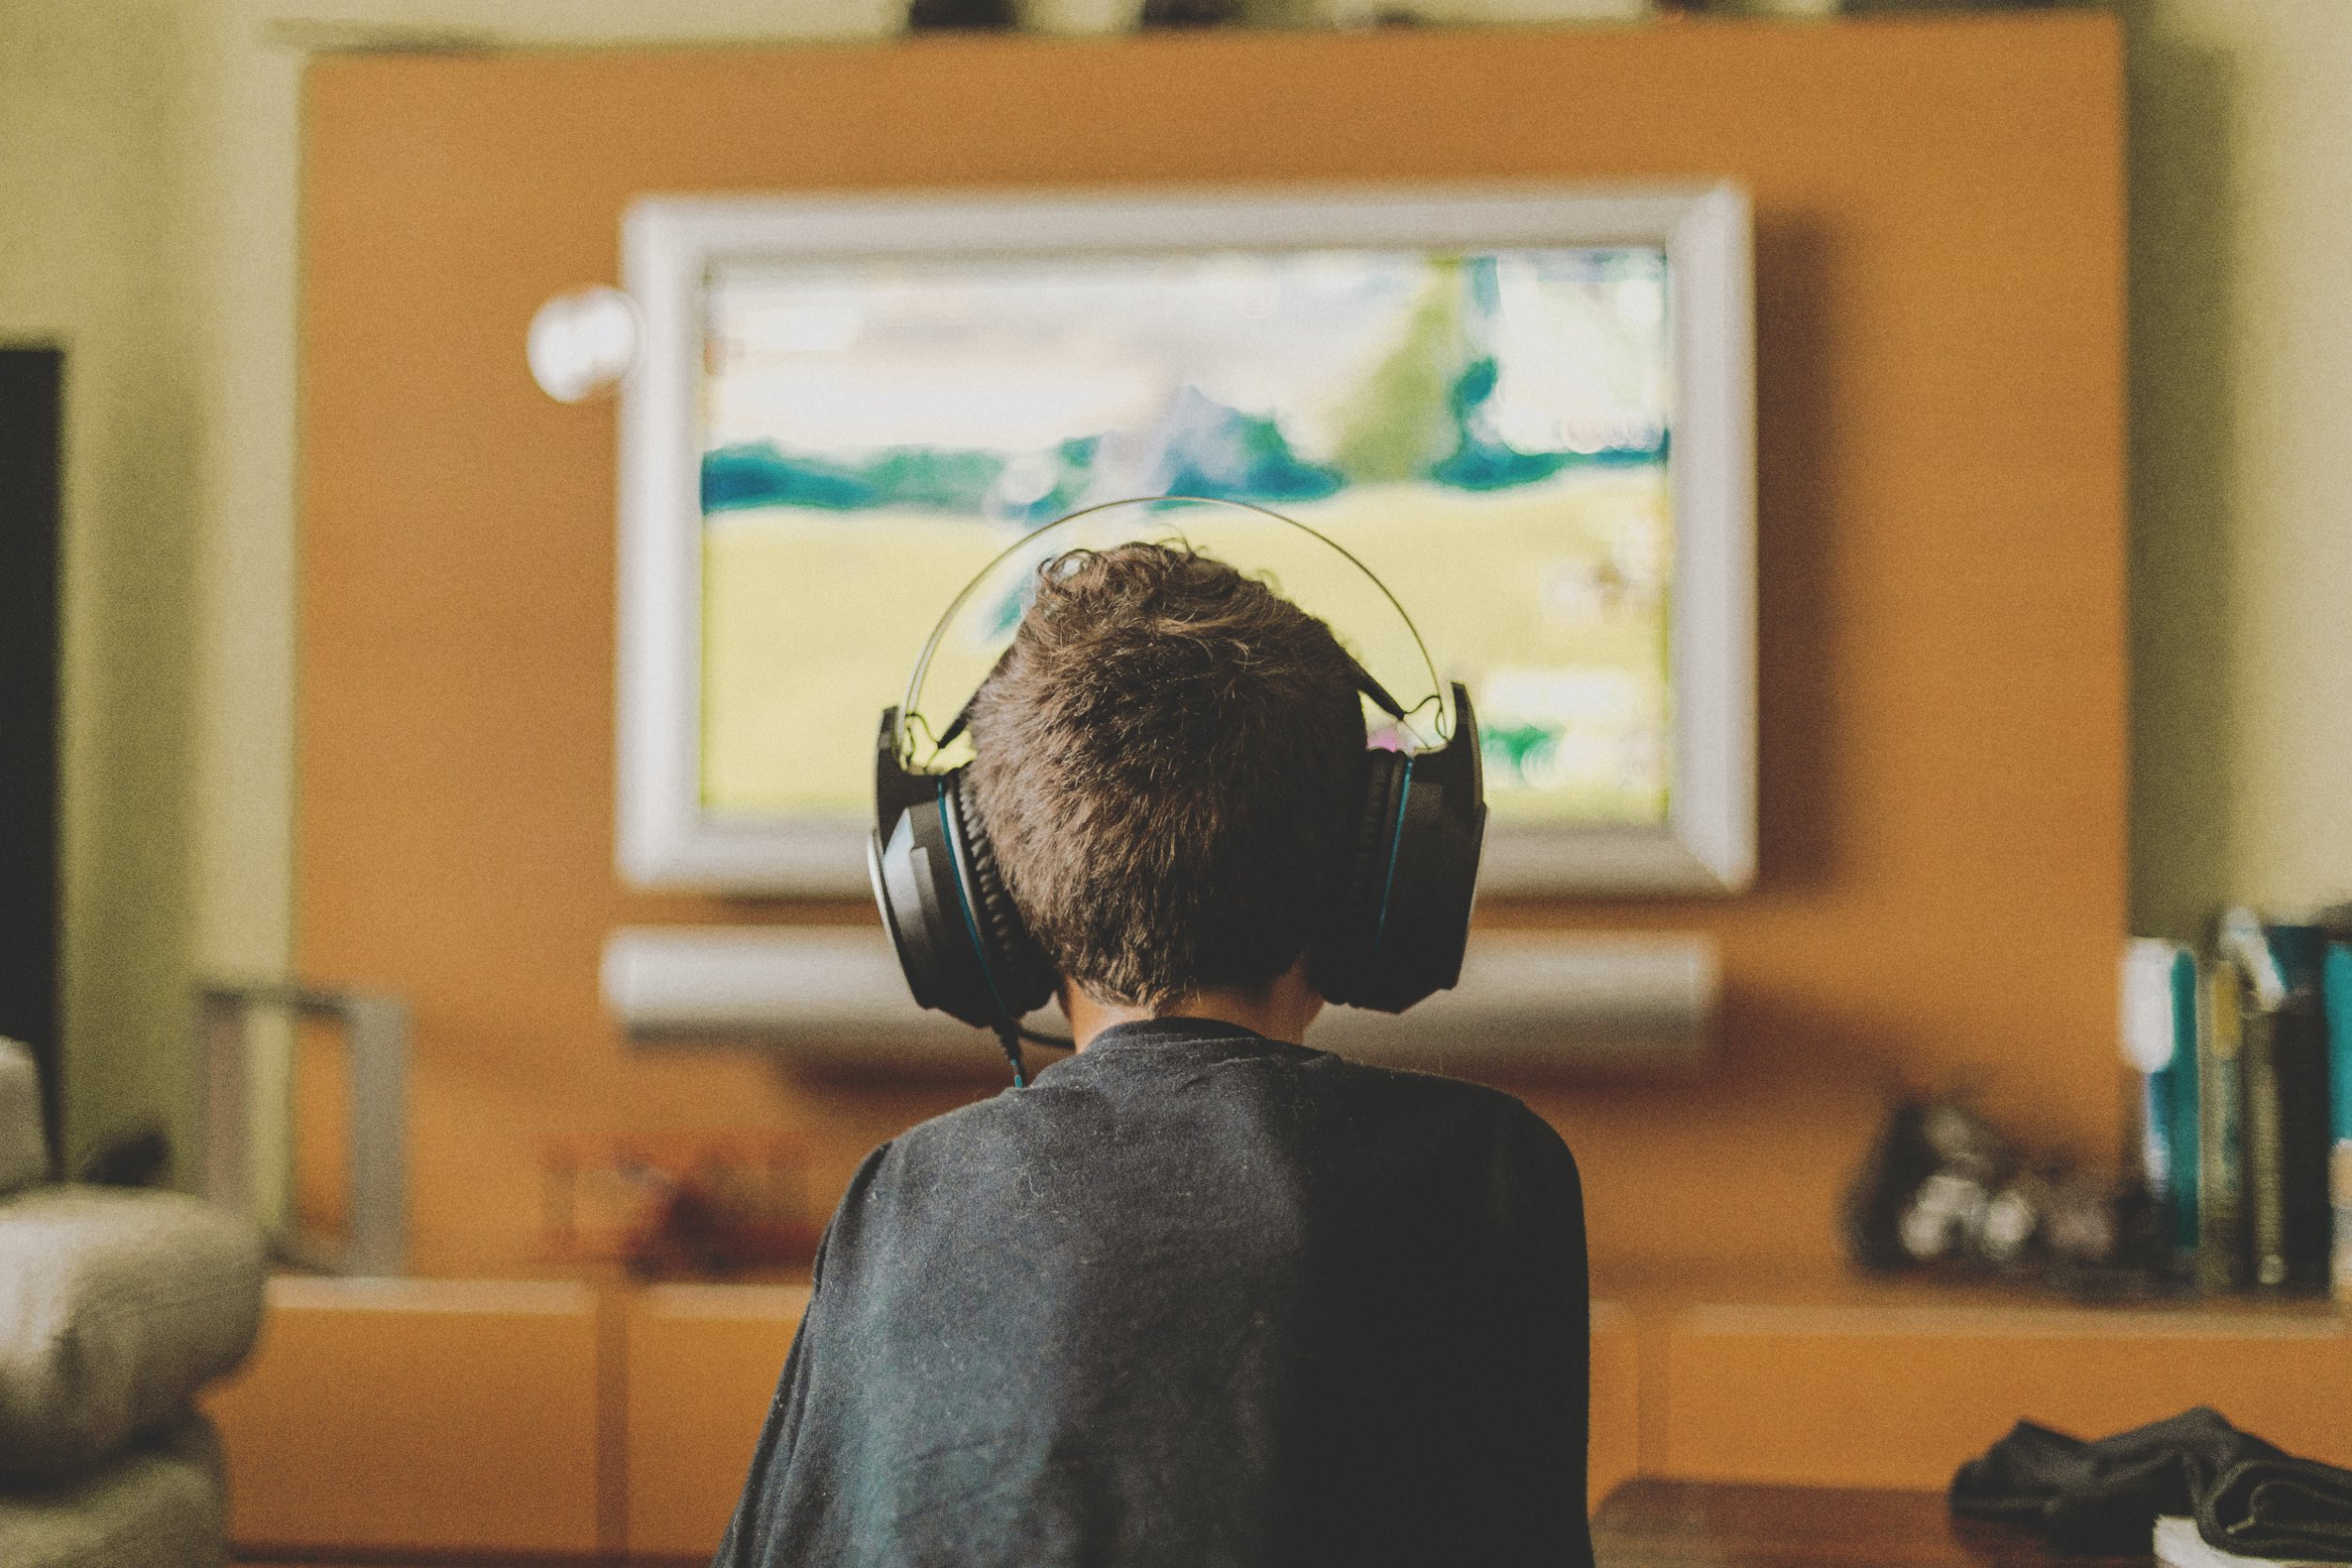 boy enjoying game console at home.Natural light